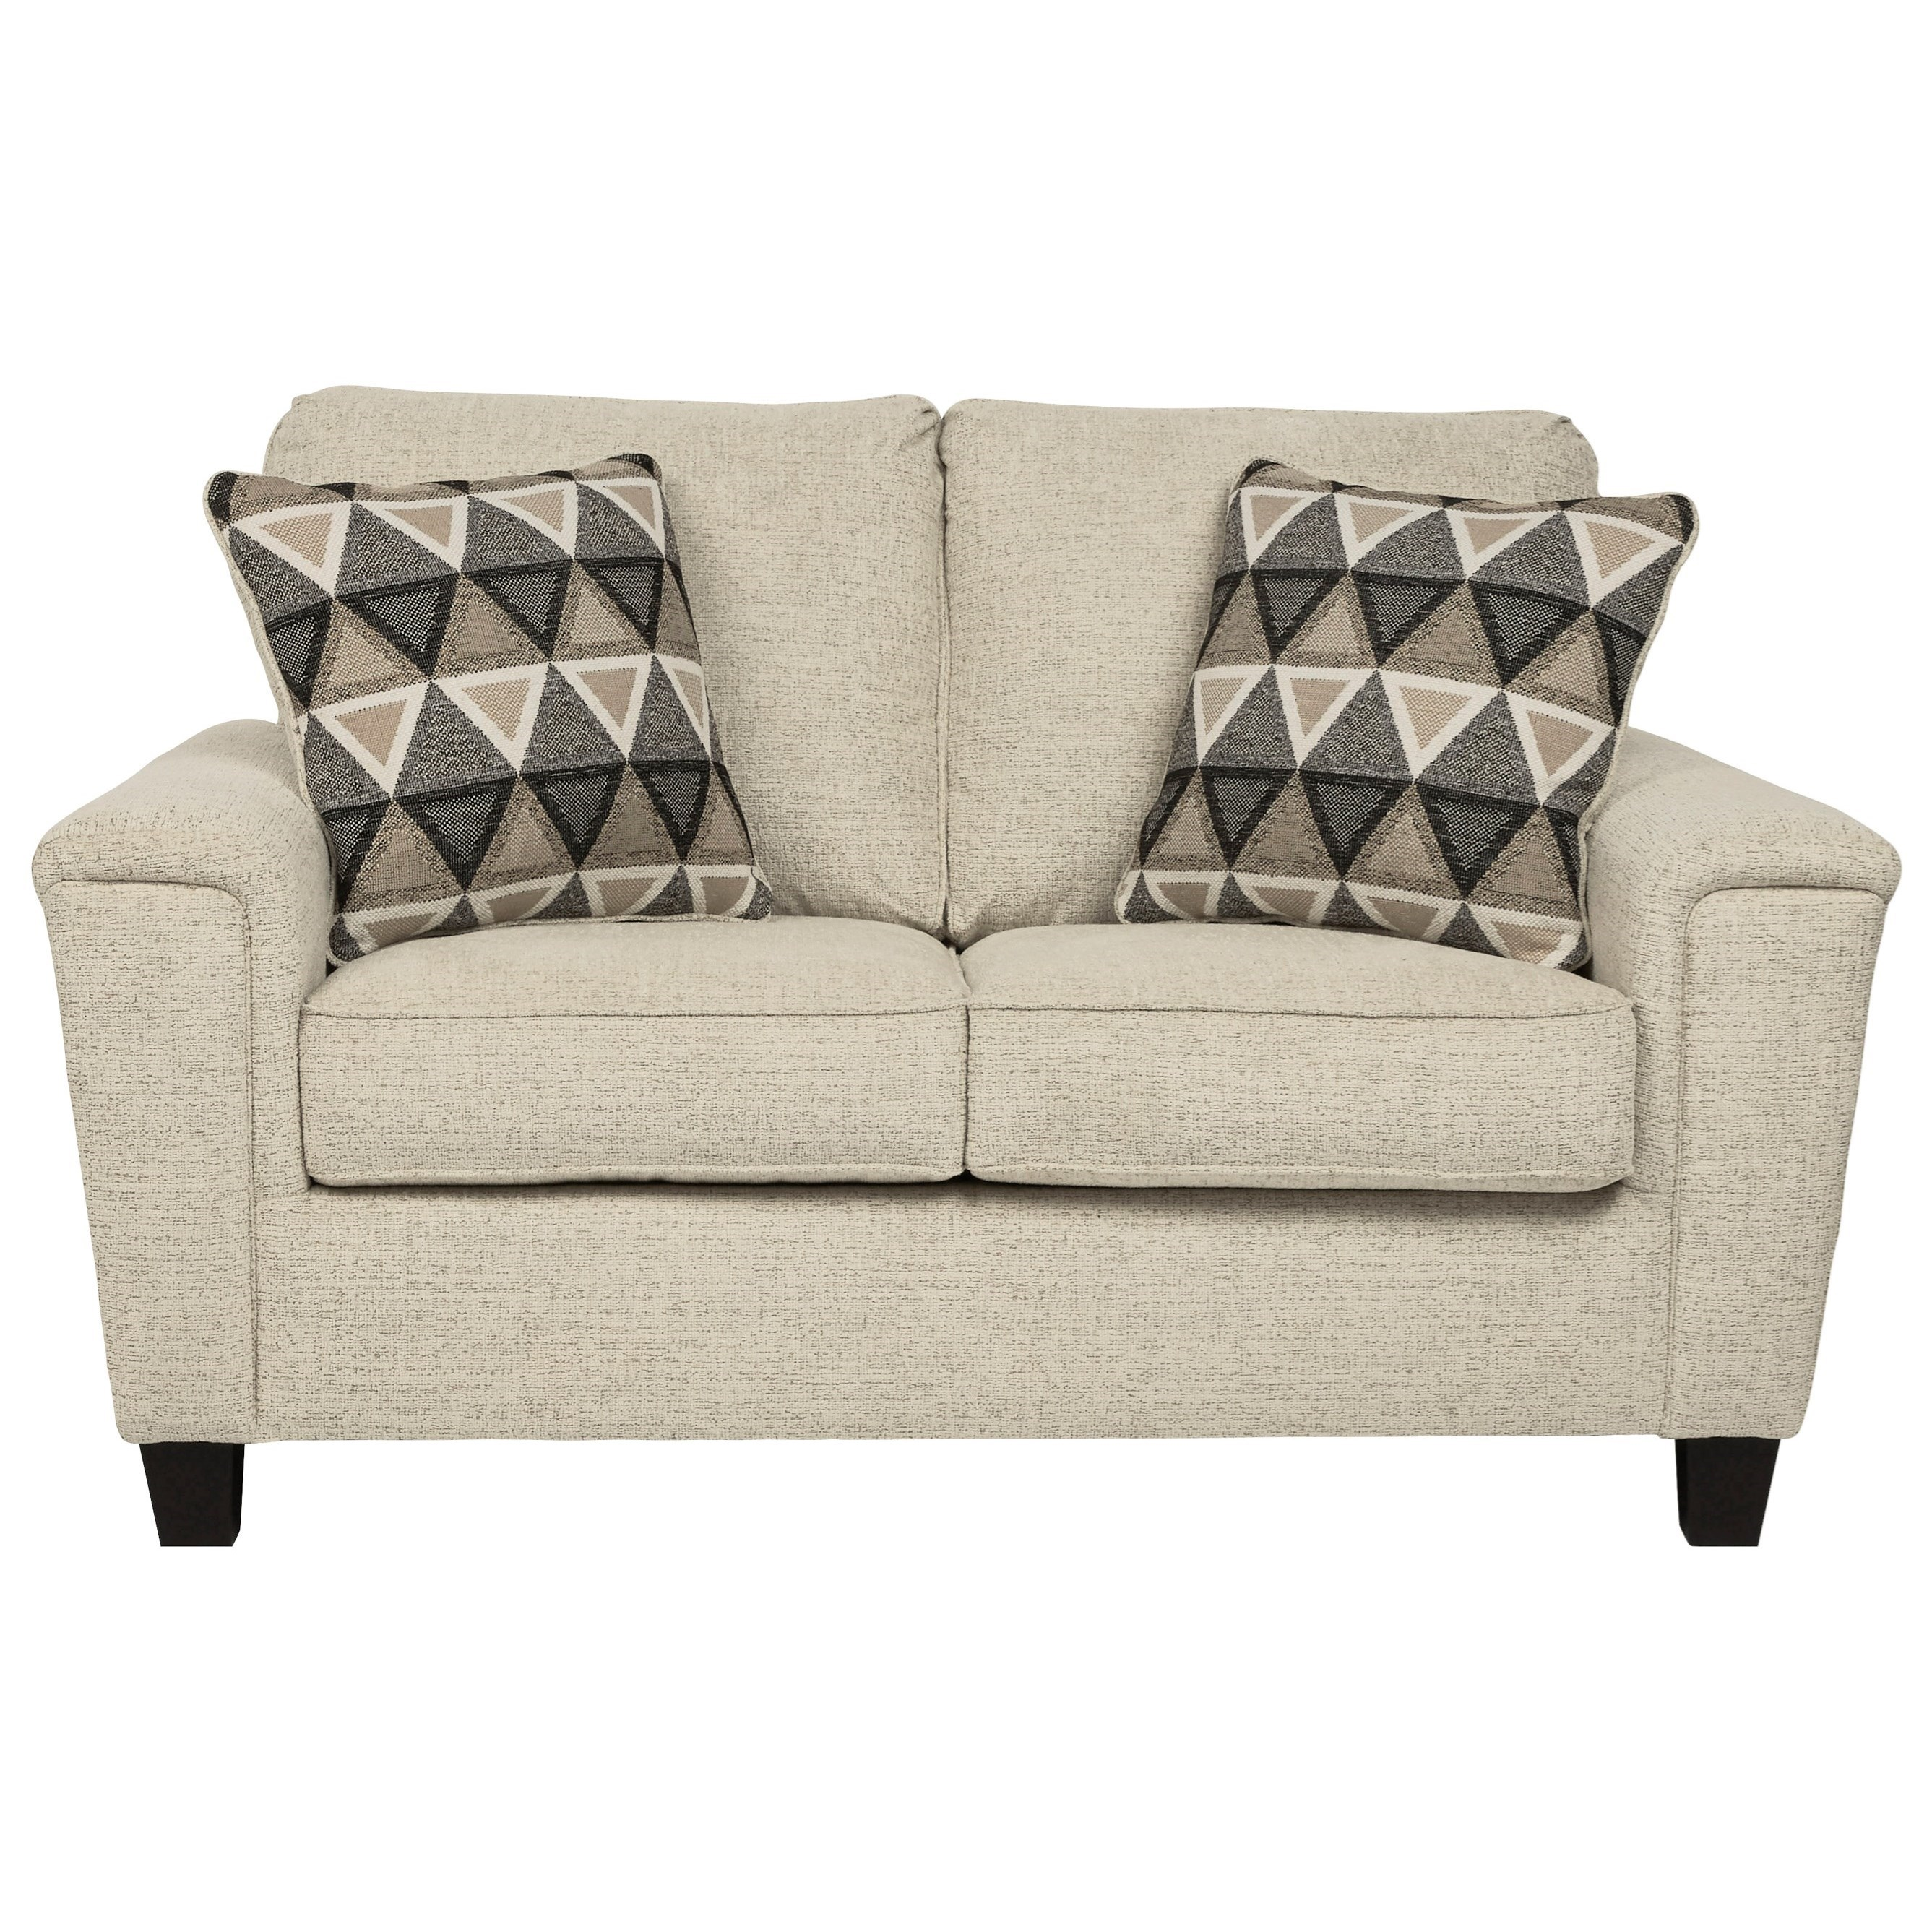 Abinger Loveseat by Signature Design by Ashley at Value City Furniture